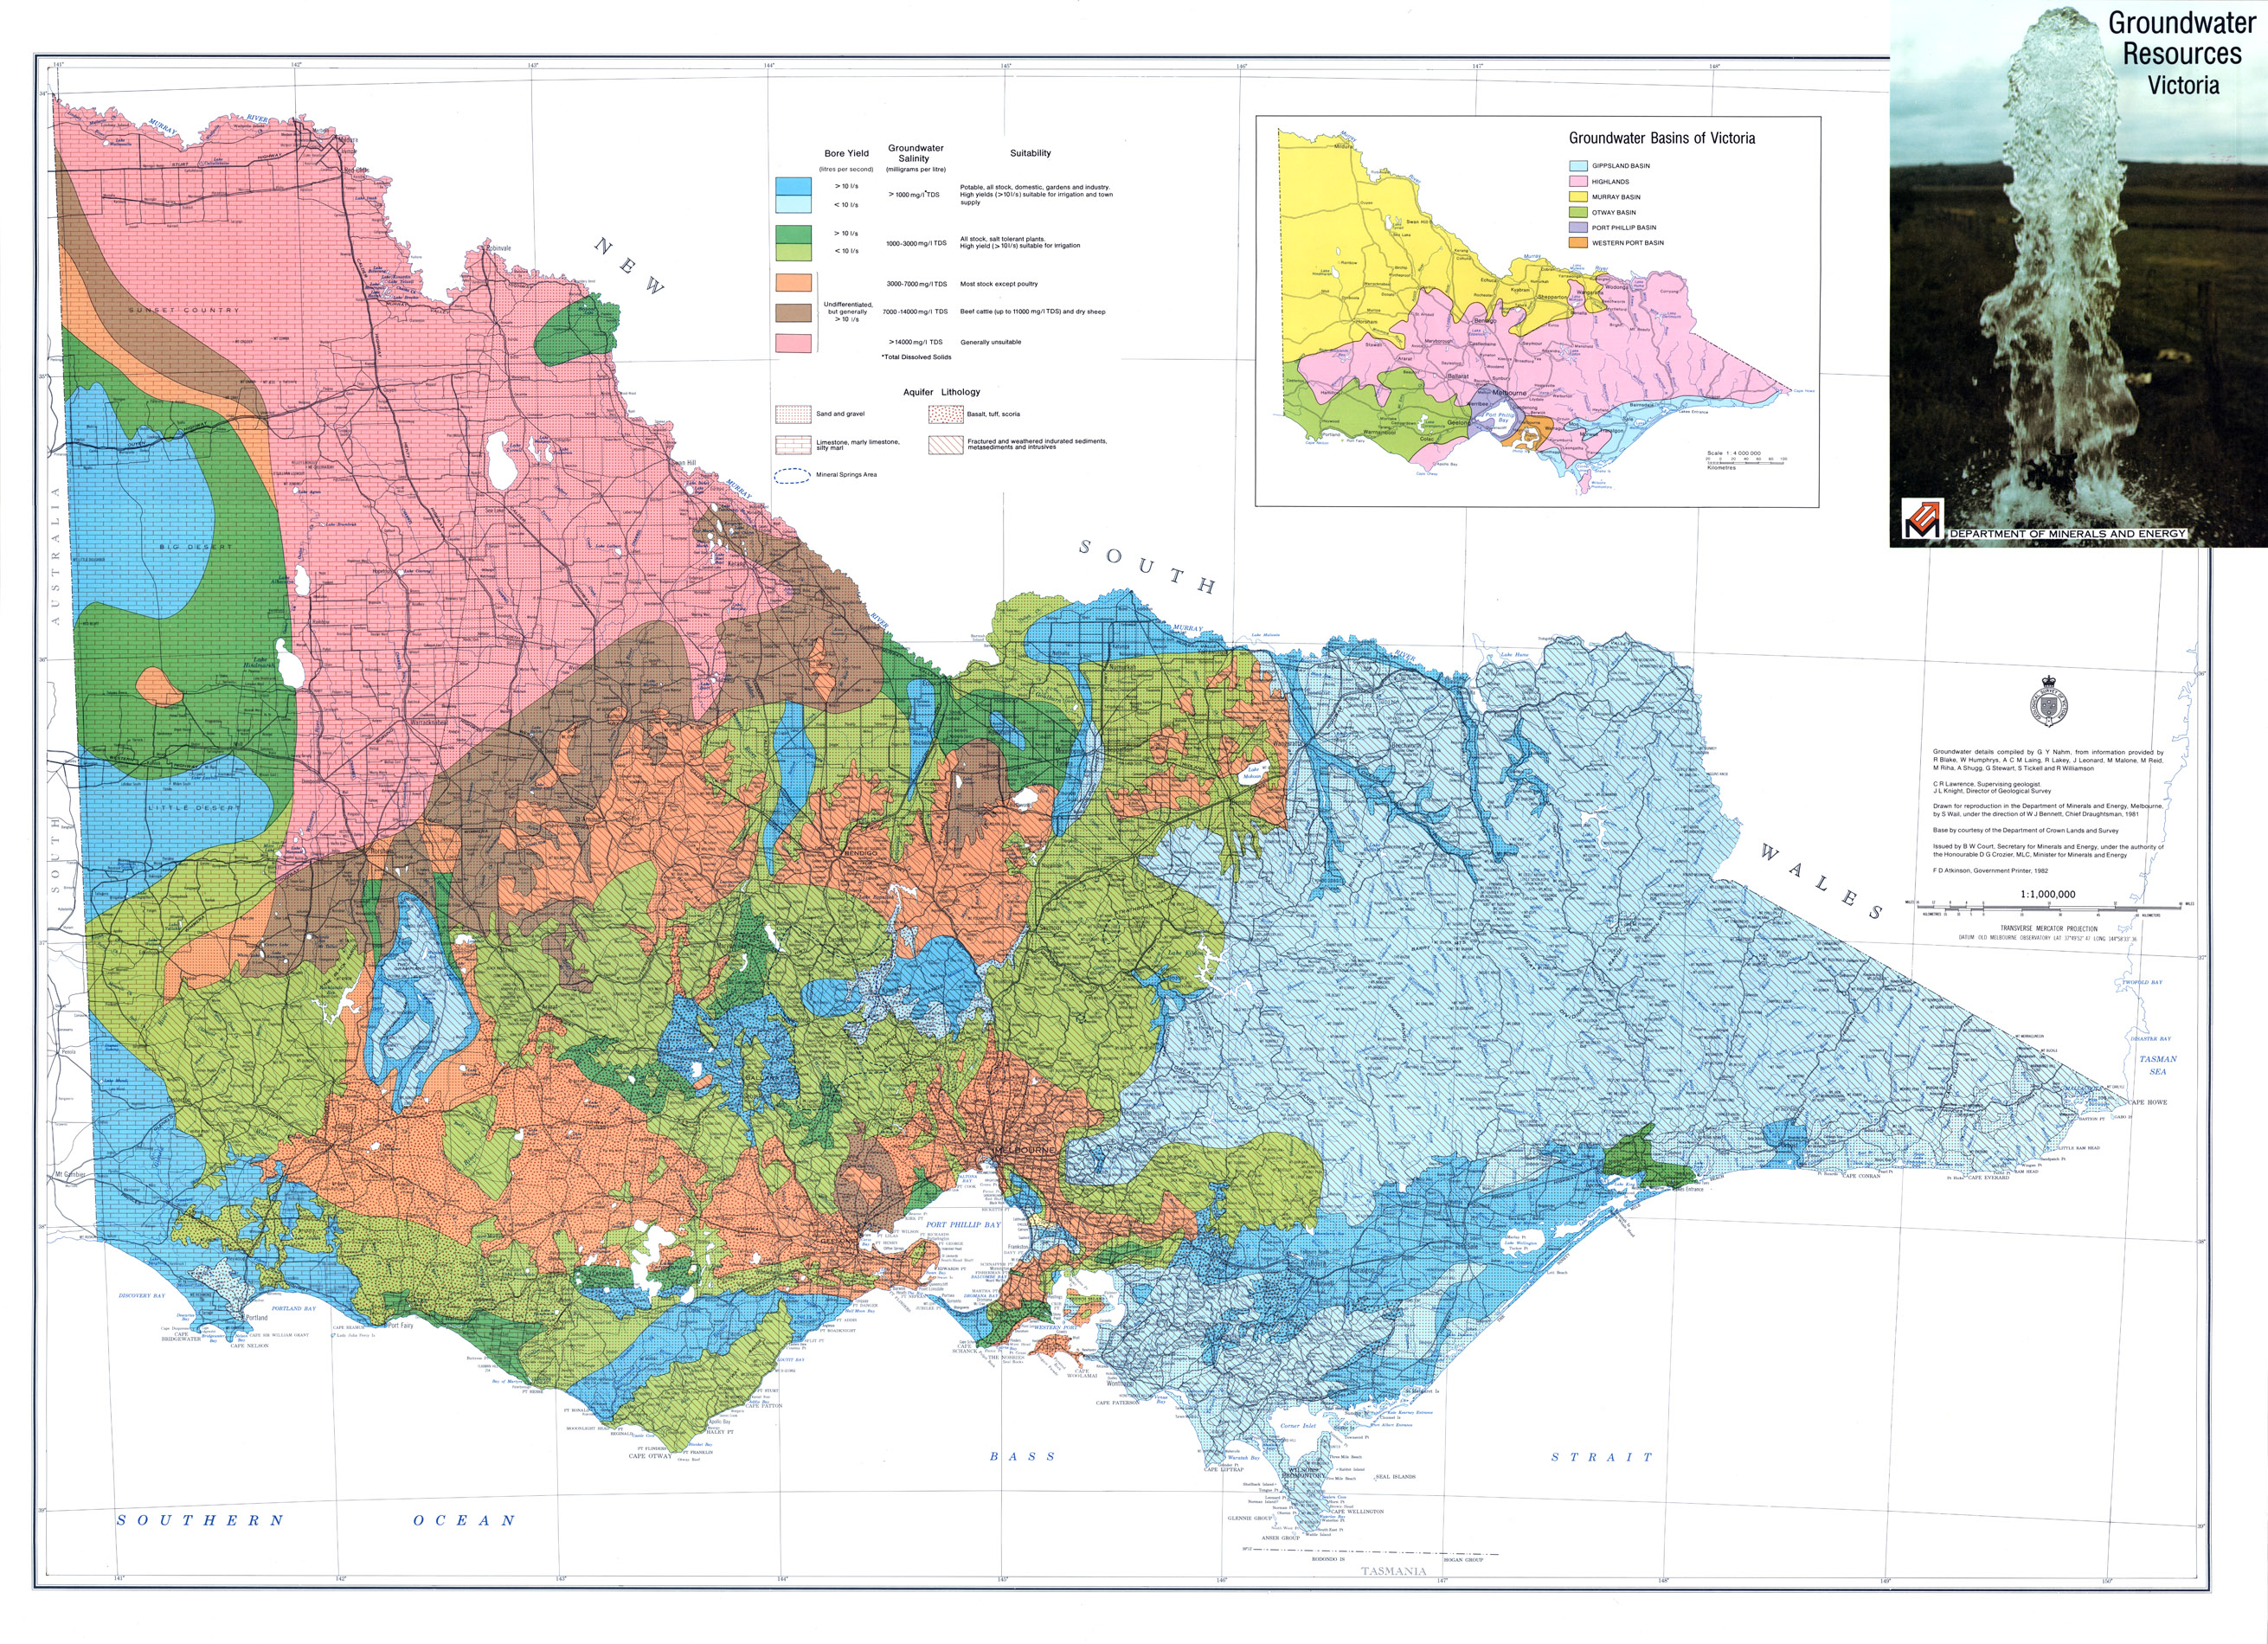 Earth Resources Energy and Earth Resources – Map Victoria Australia